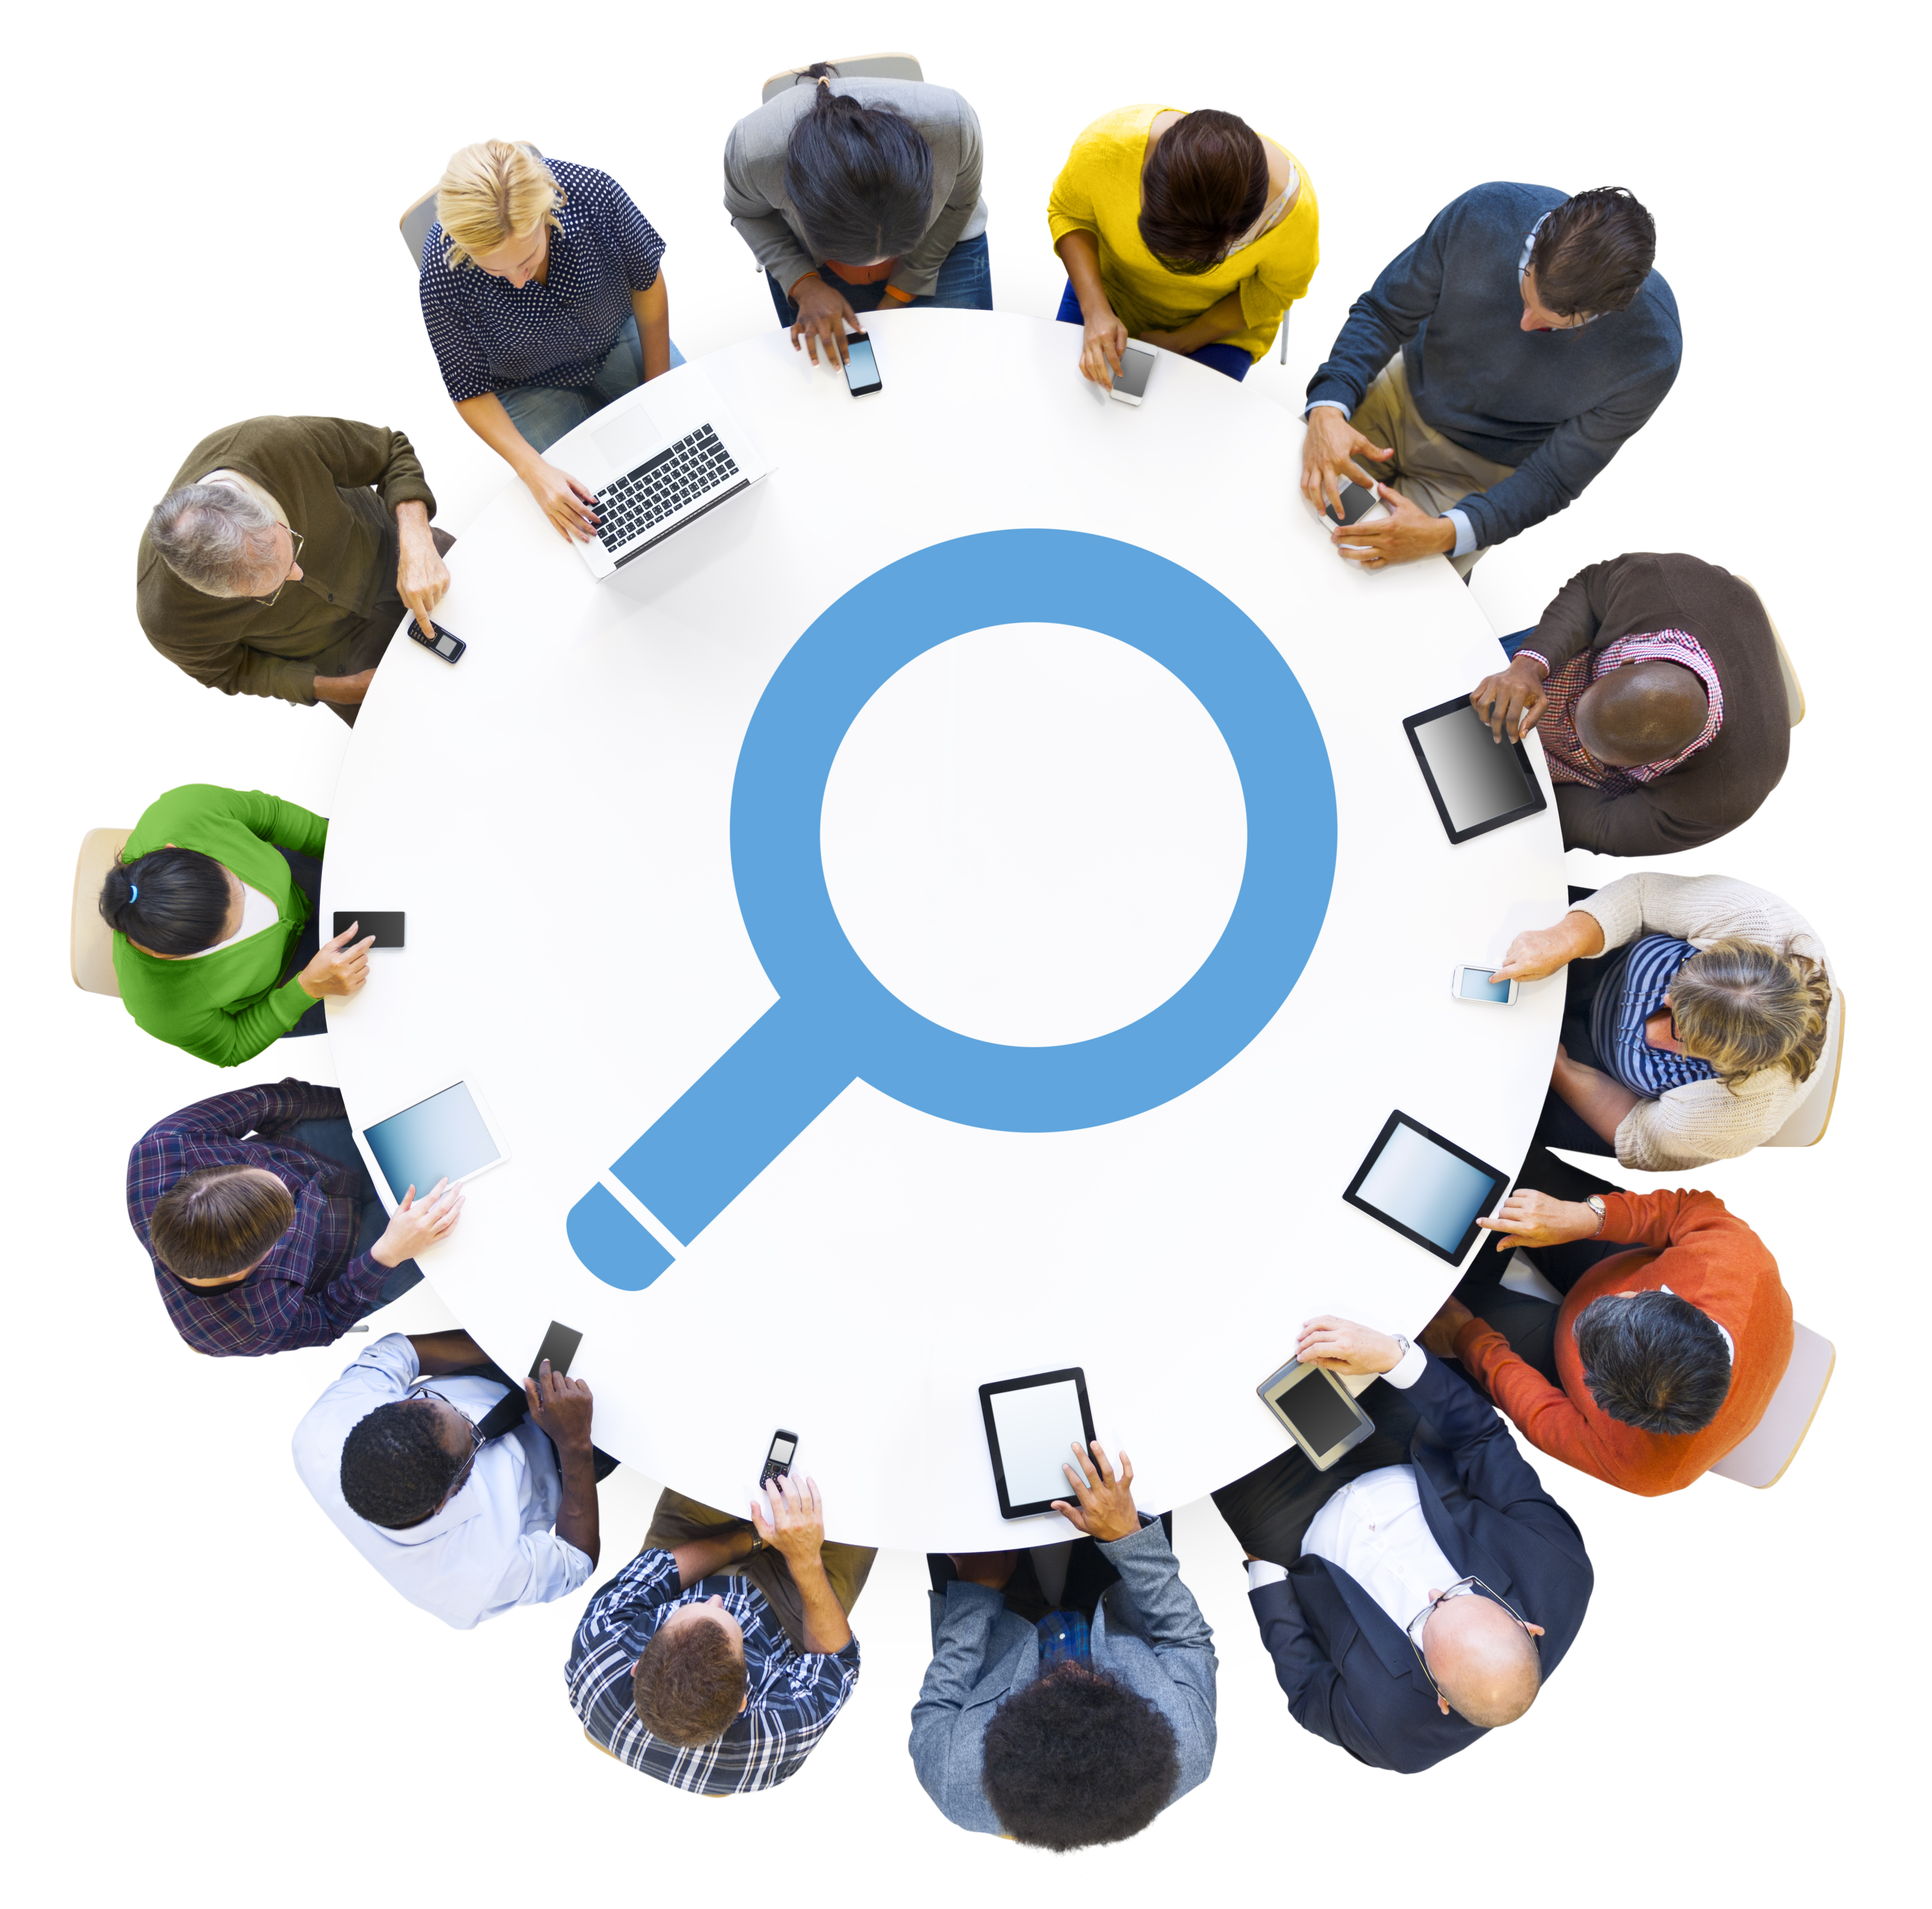 Diverse People Using Digital Devices with Search Symbol